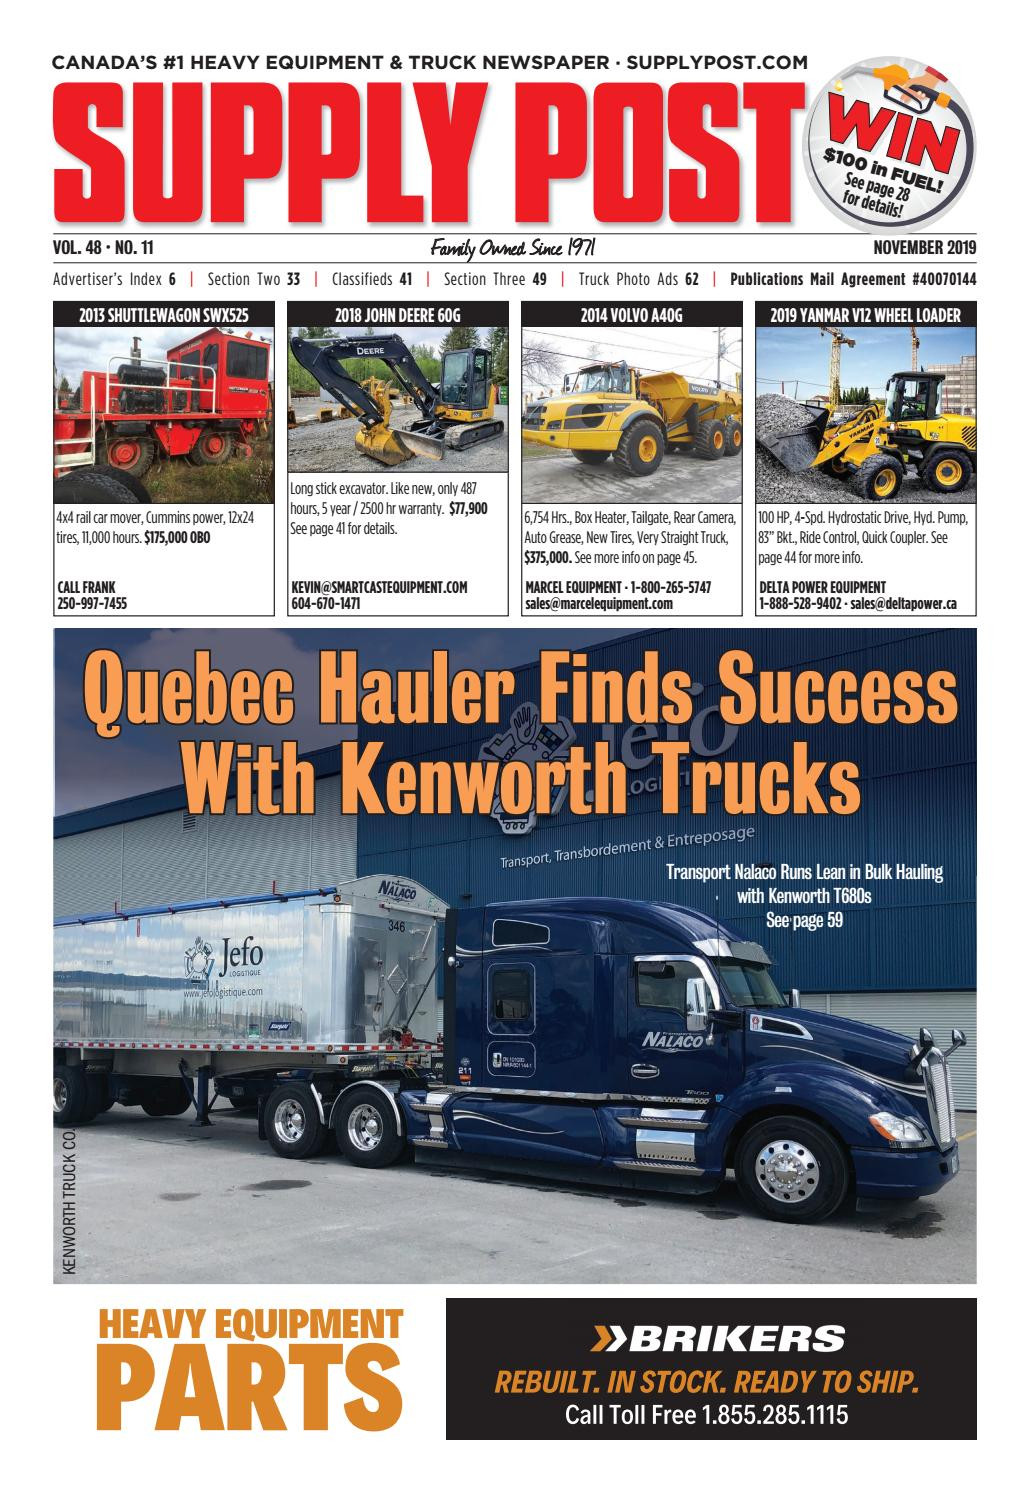 New Brunswick Department Of Transportation and Infrastructure Awesome Supply Post November 2019 by Supply Post Newspaper issuu